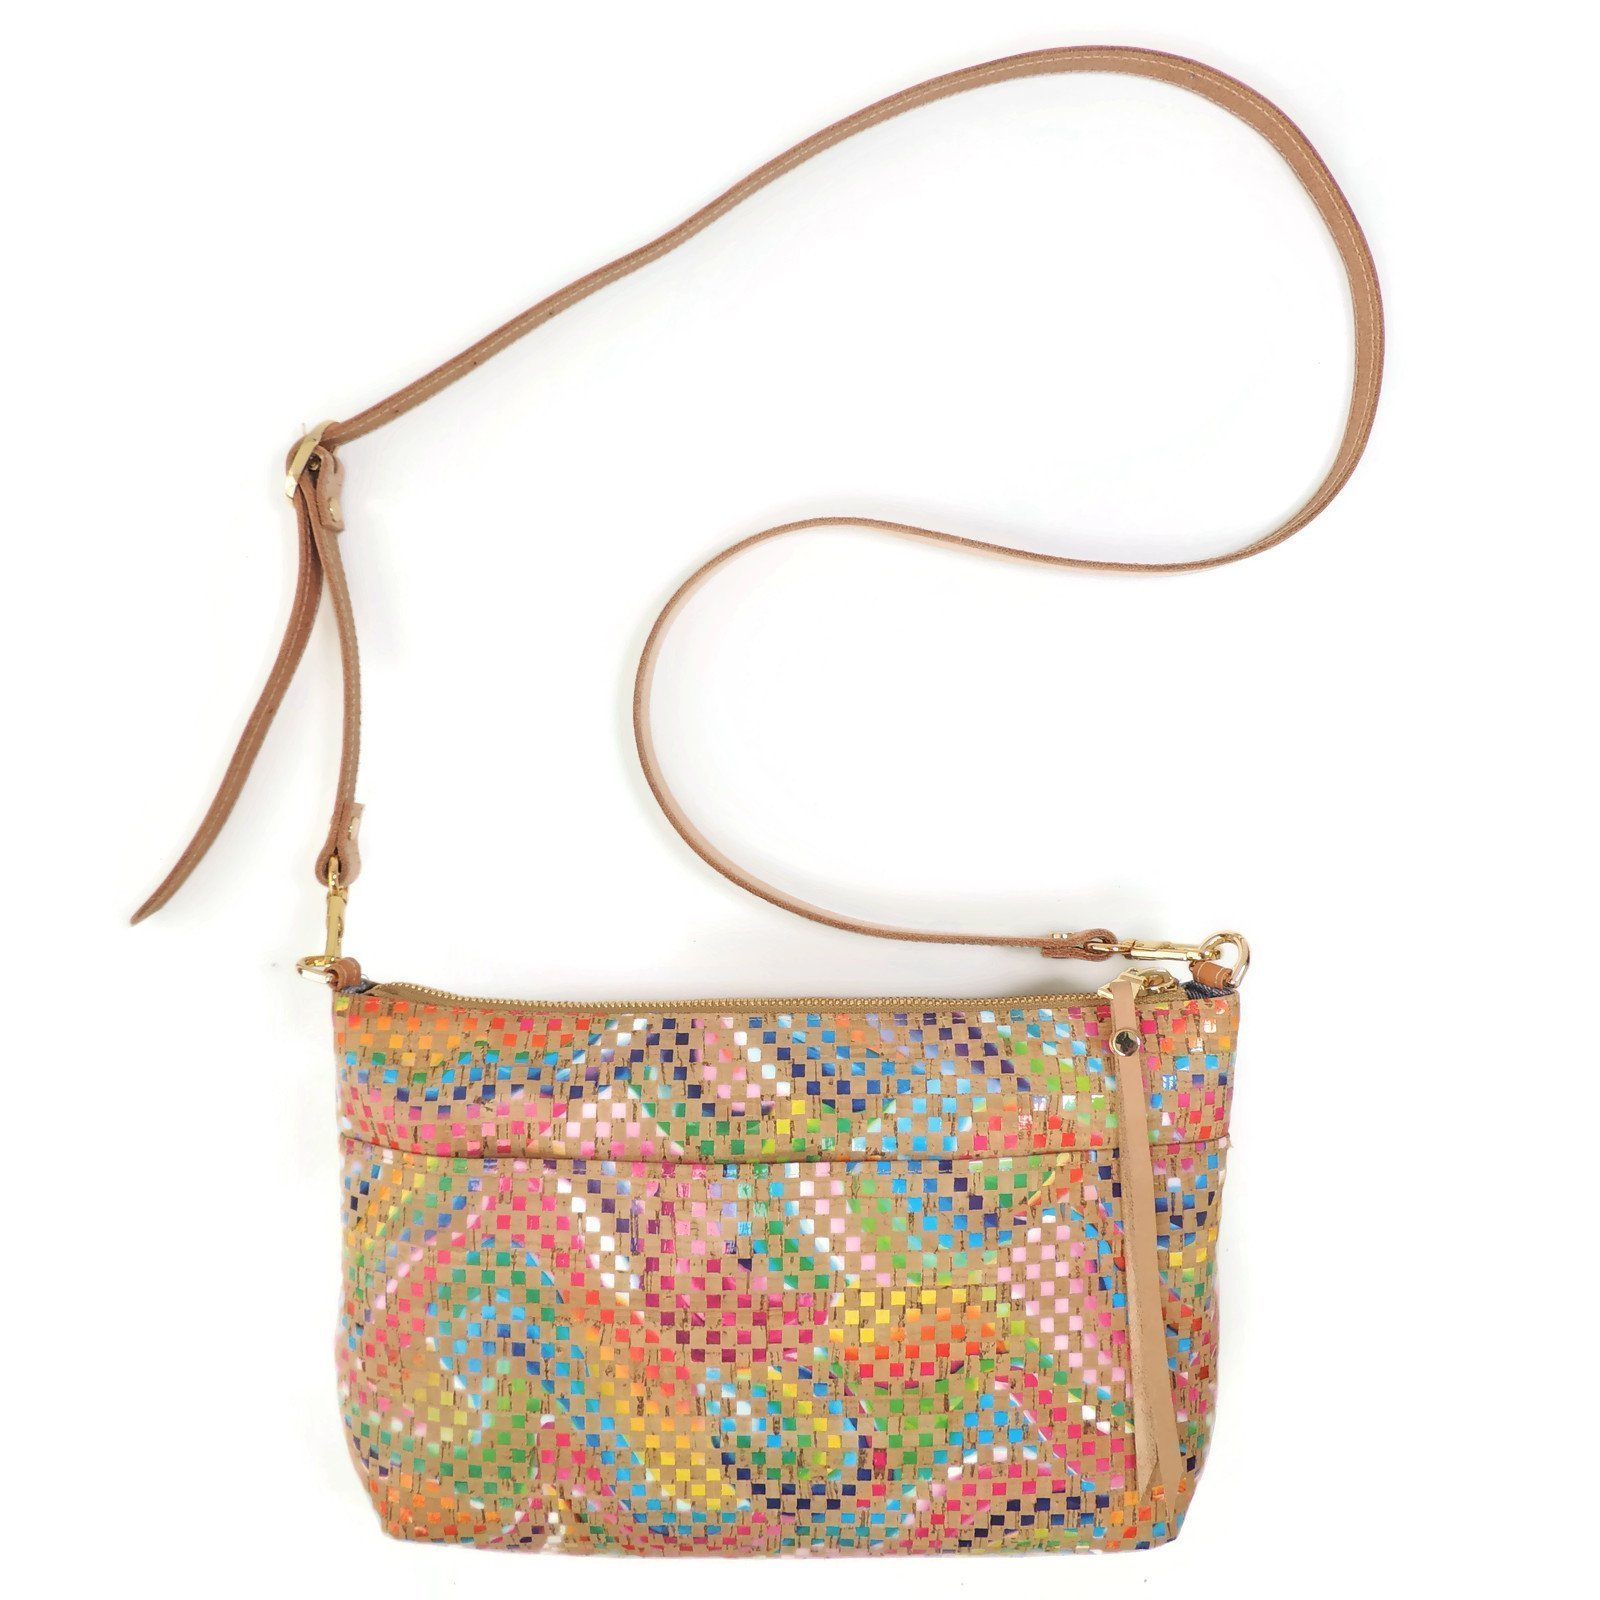 Cork Crossbody Purse with Adjustable Leather Strap and Pocket by Spicer Bags